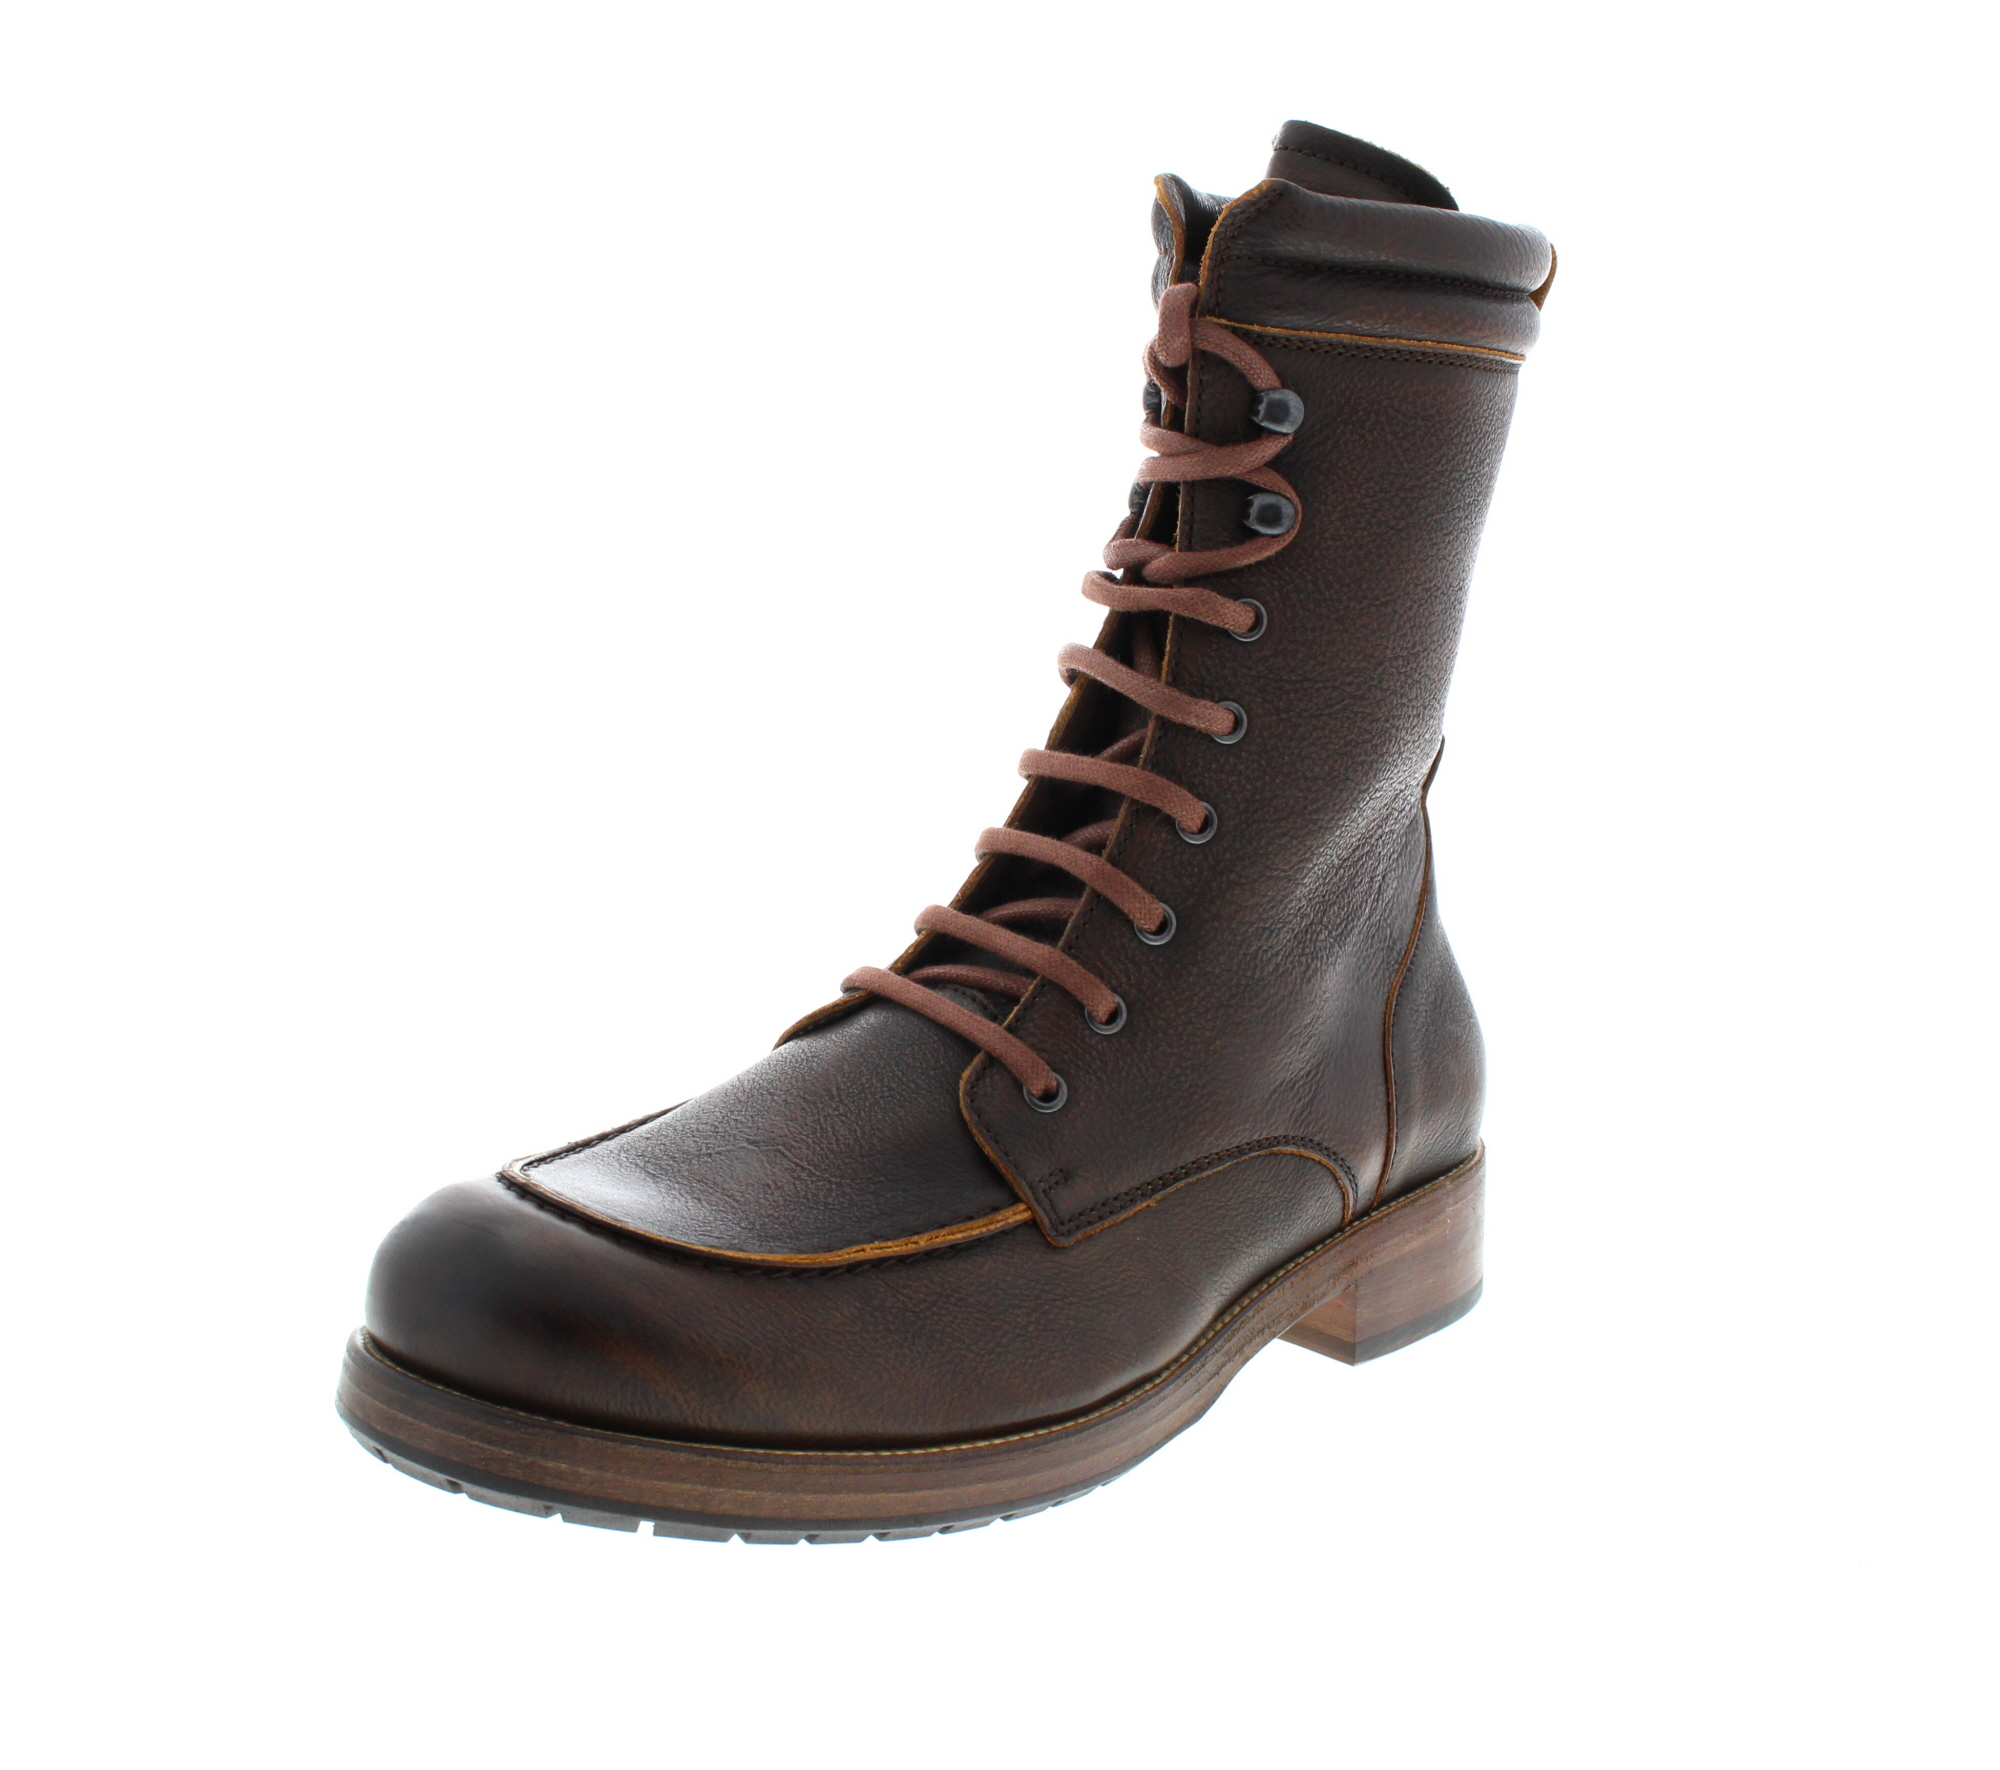 ZEHA BERLIN Herrenschuhe - Boots 458.087 - Belfast Curry_0